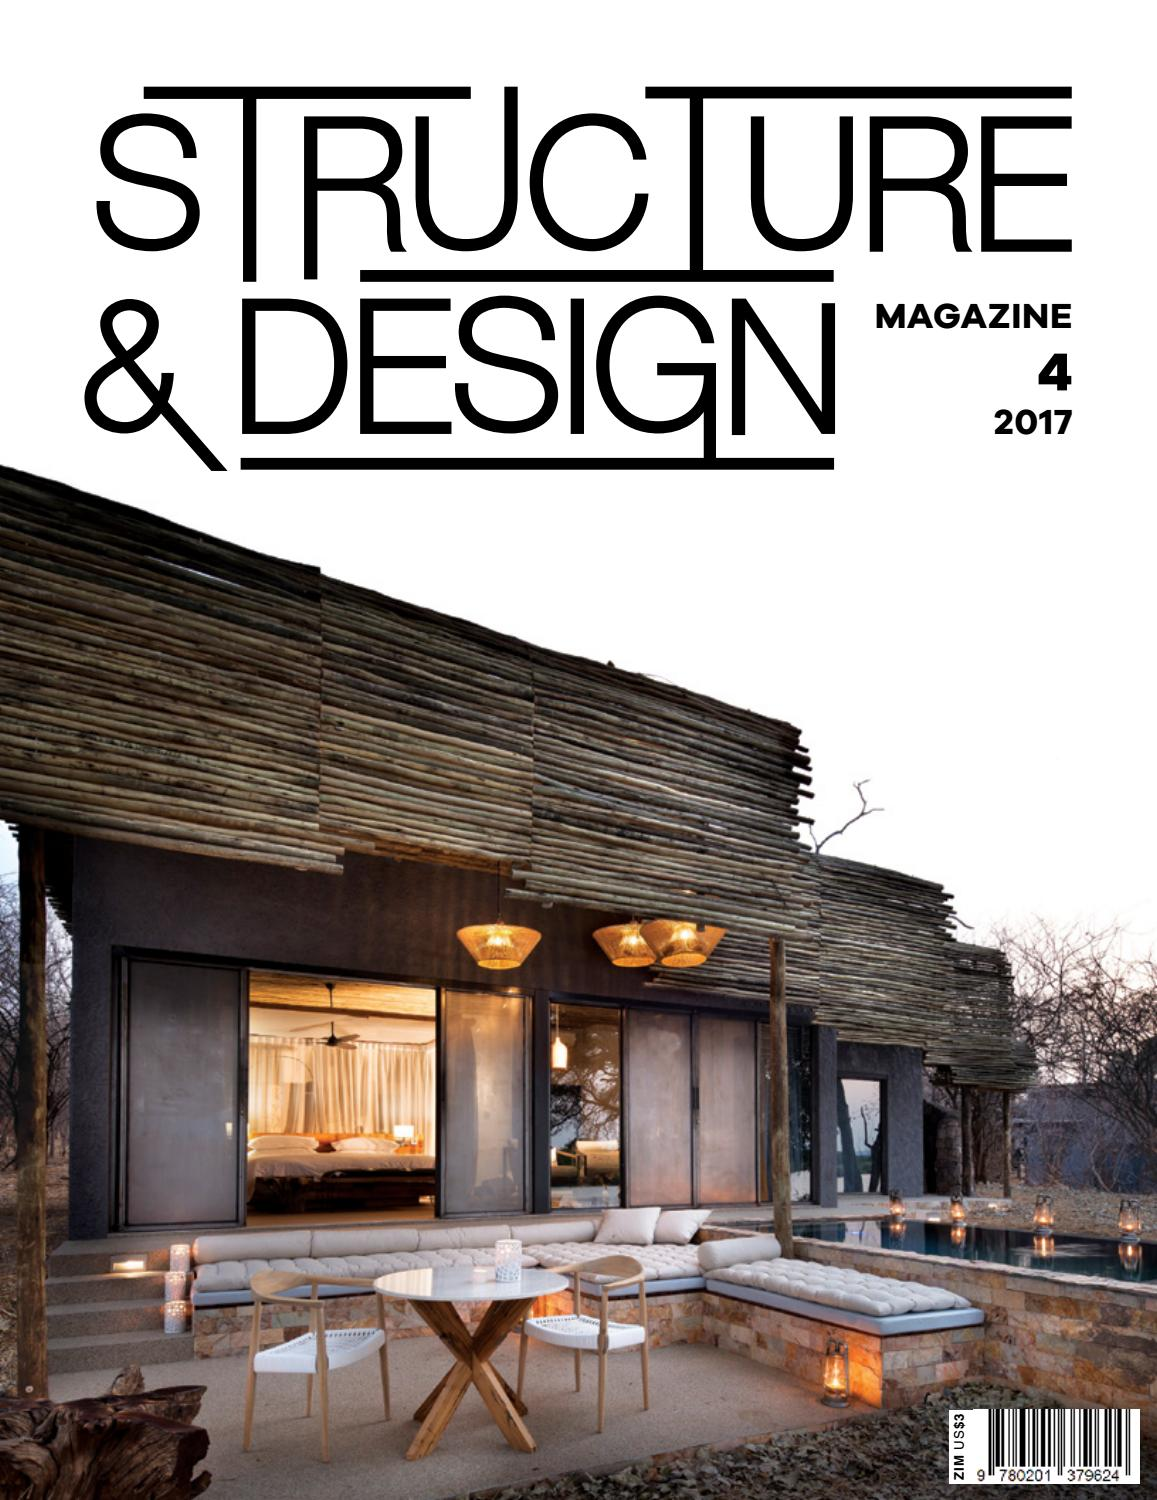 Structure design issue 4 by structure design issuu